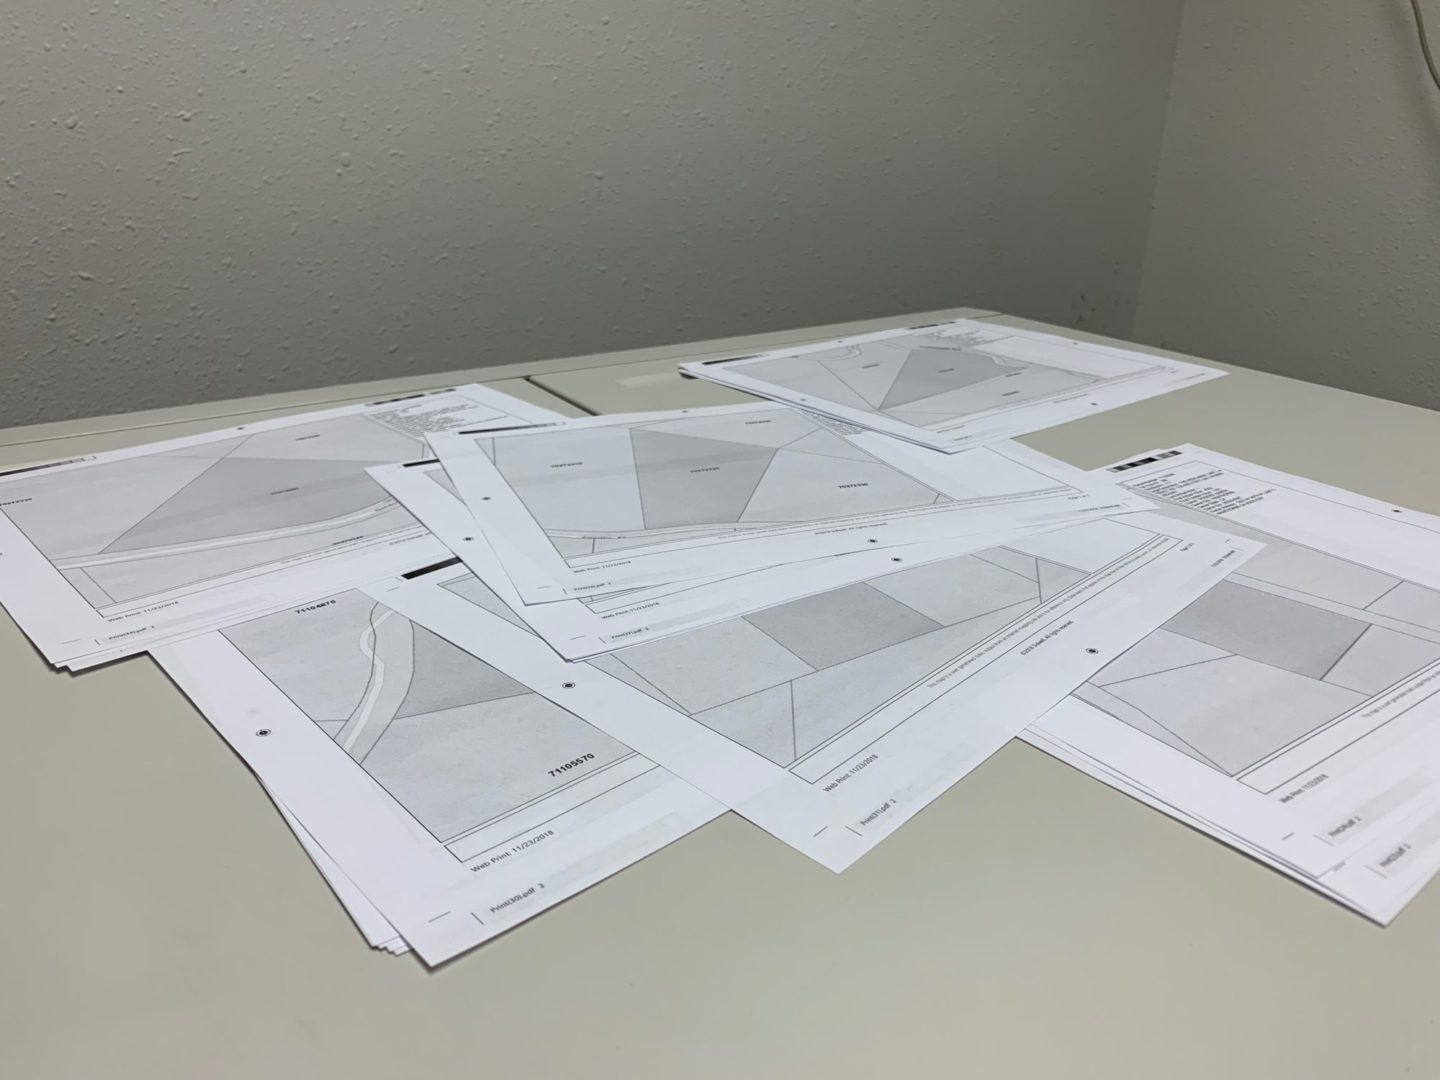 Technical Drawings - Maps